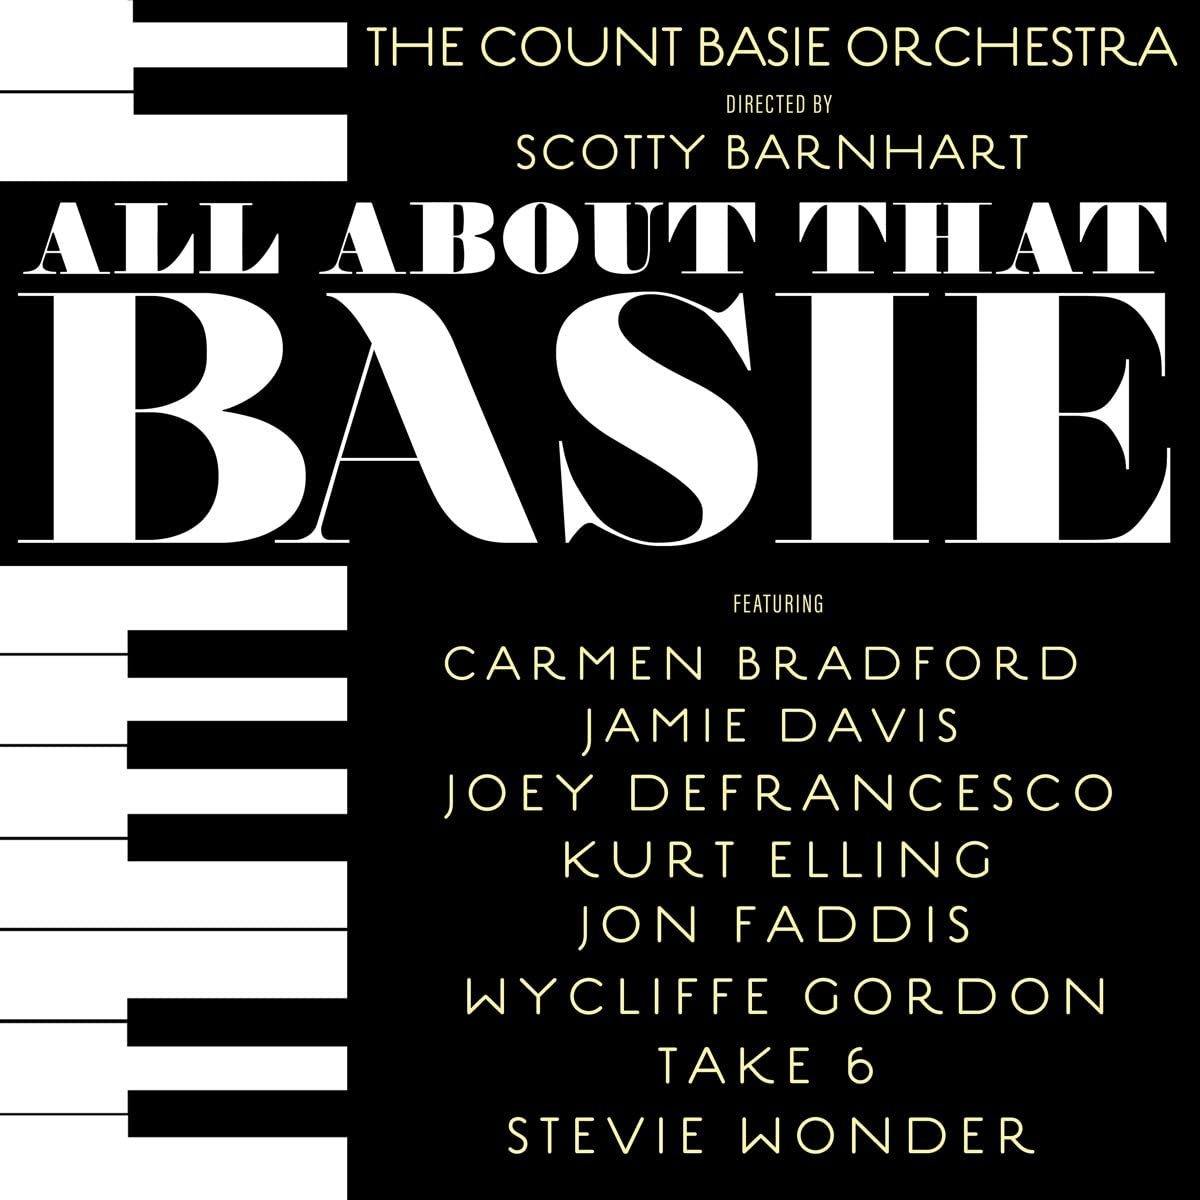 Review of The Count Basie Orchestra Directed by Scotty Barnhart: All About That Basie